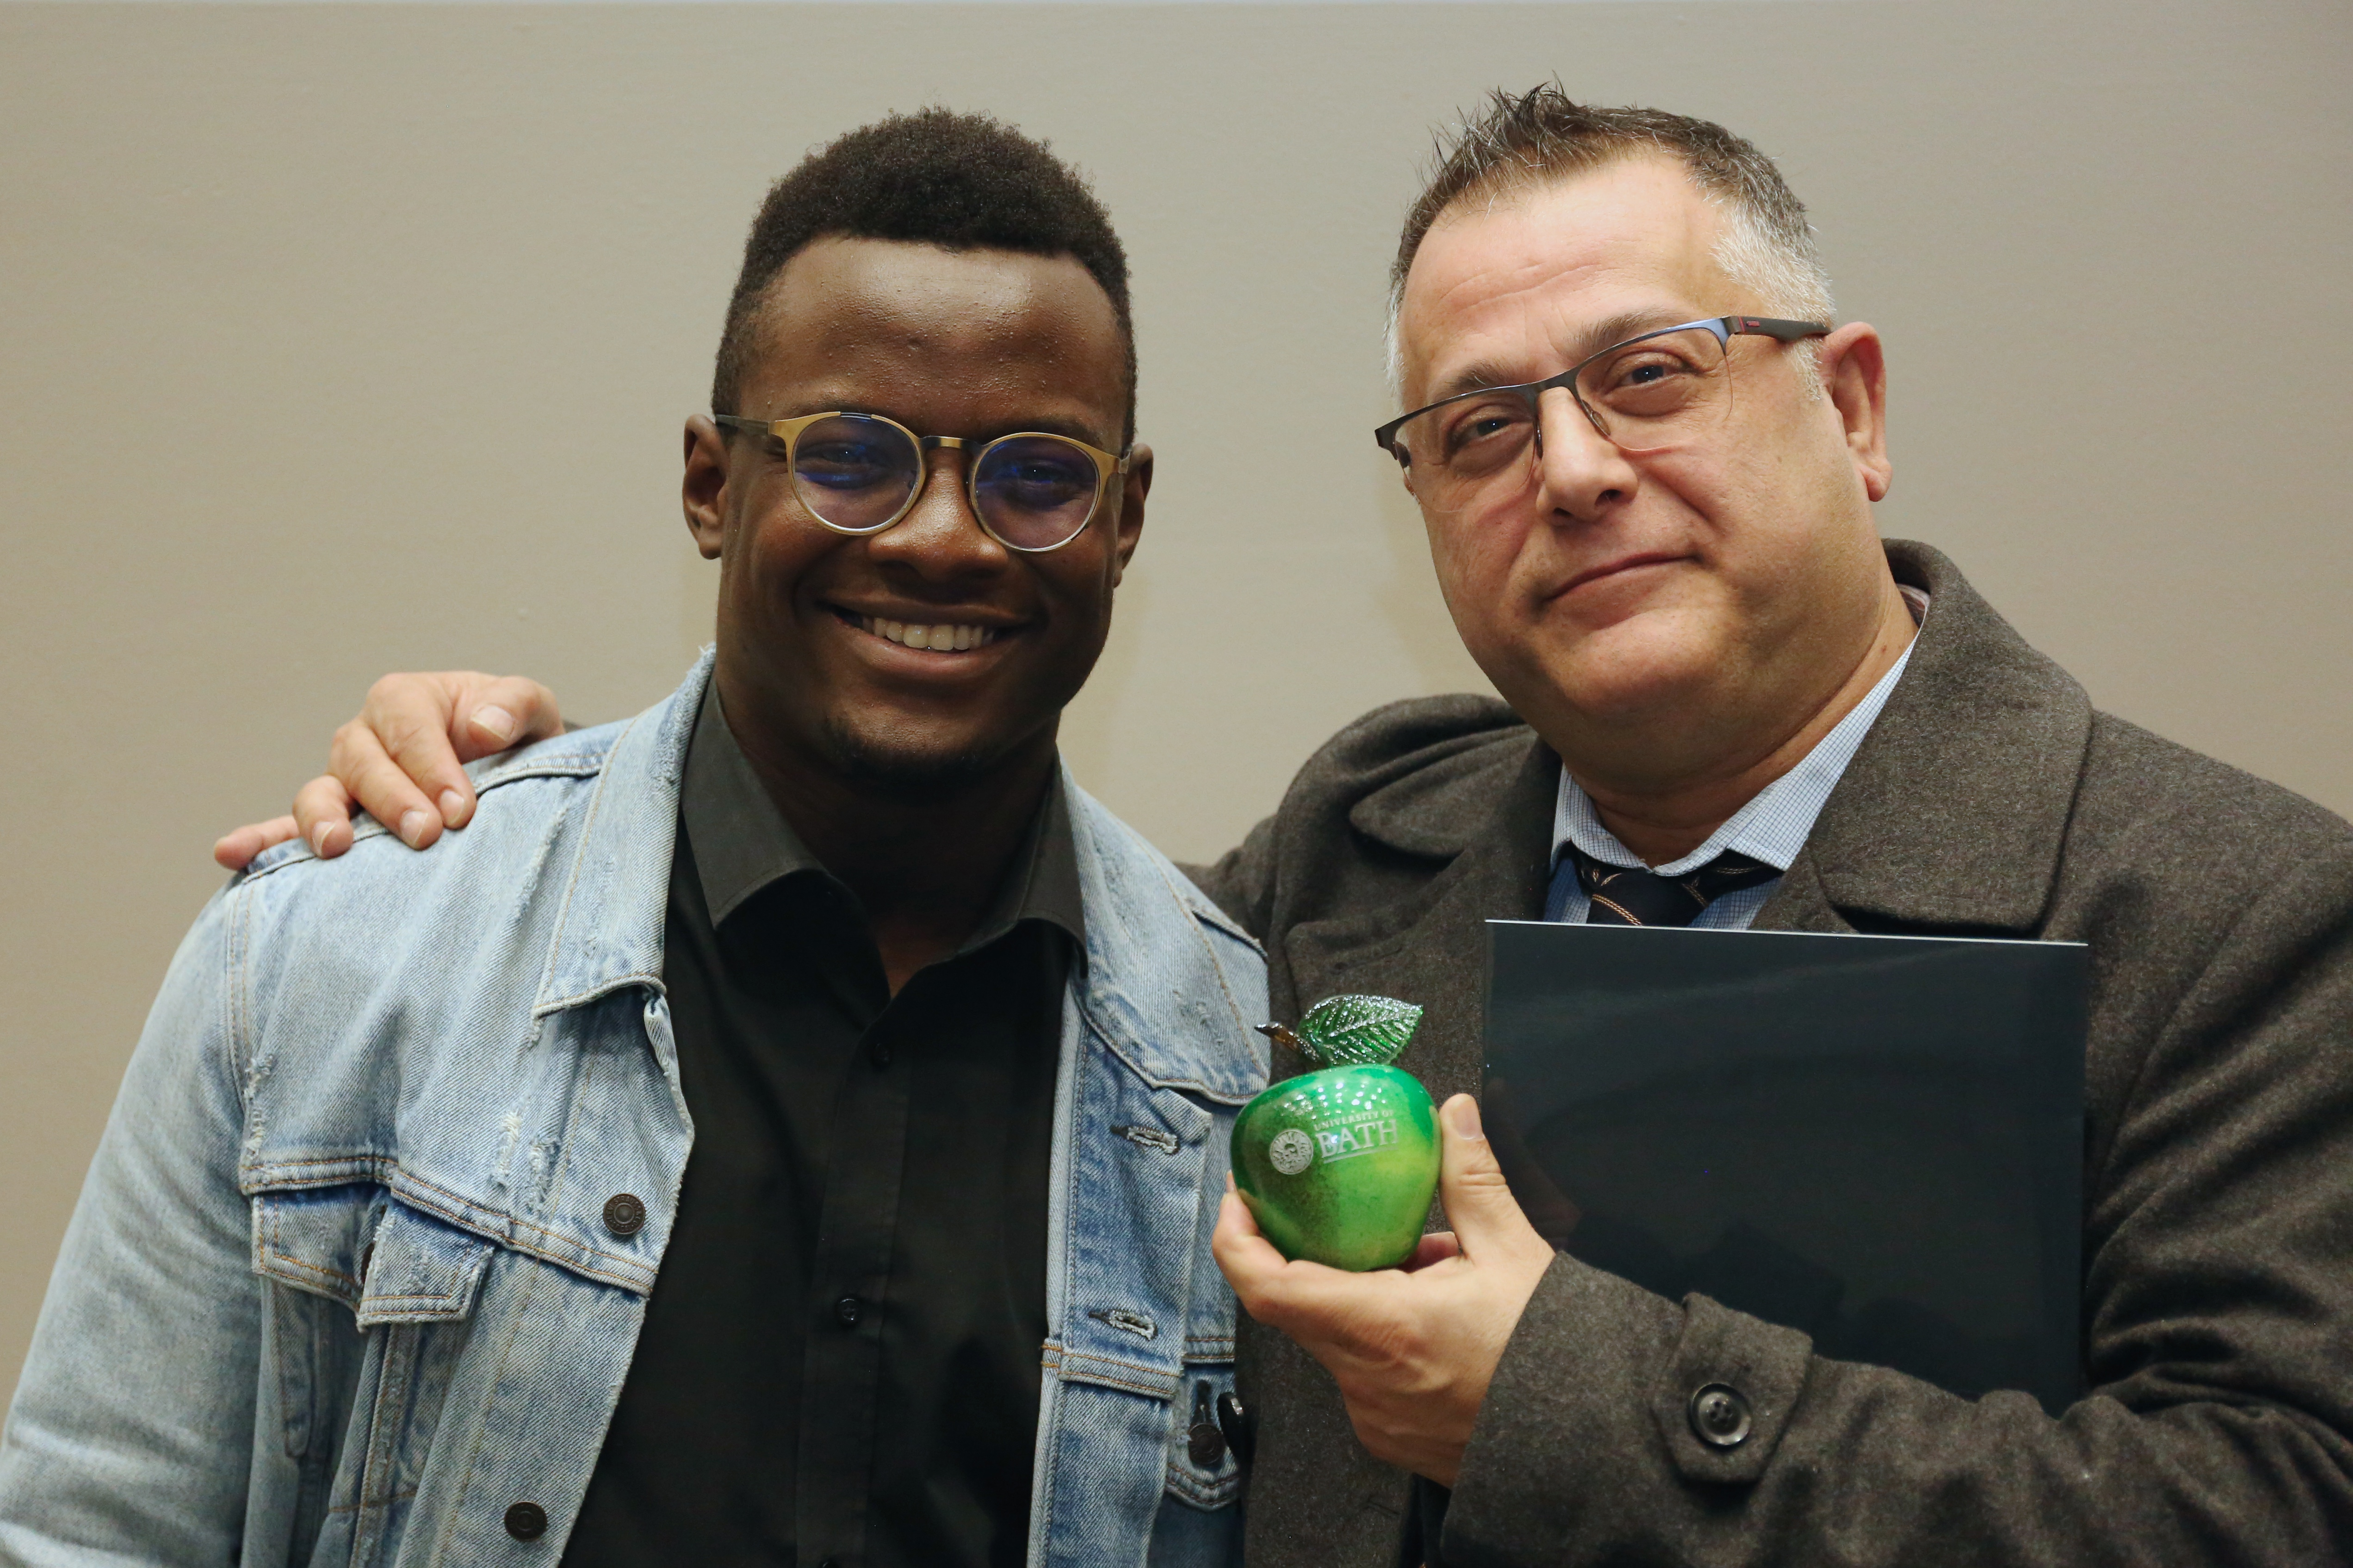 A black student with a male teacher holding his green glass apple award. Both are wearing glasses and smiling for the camera.